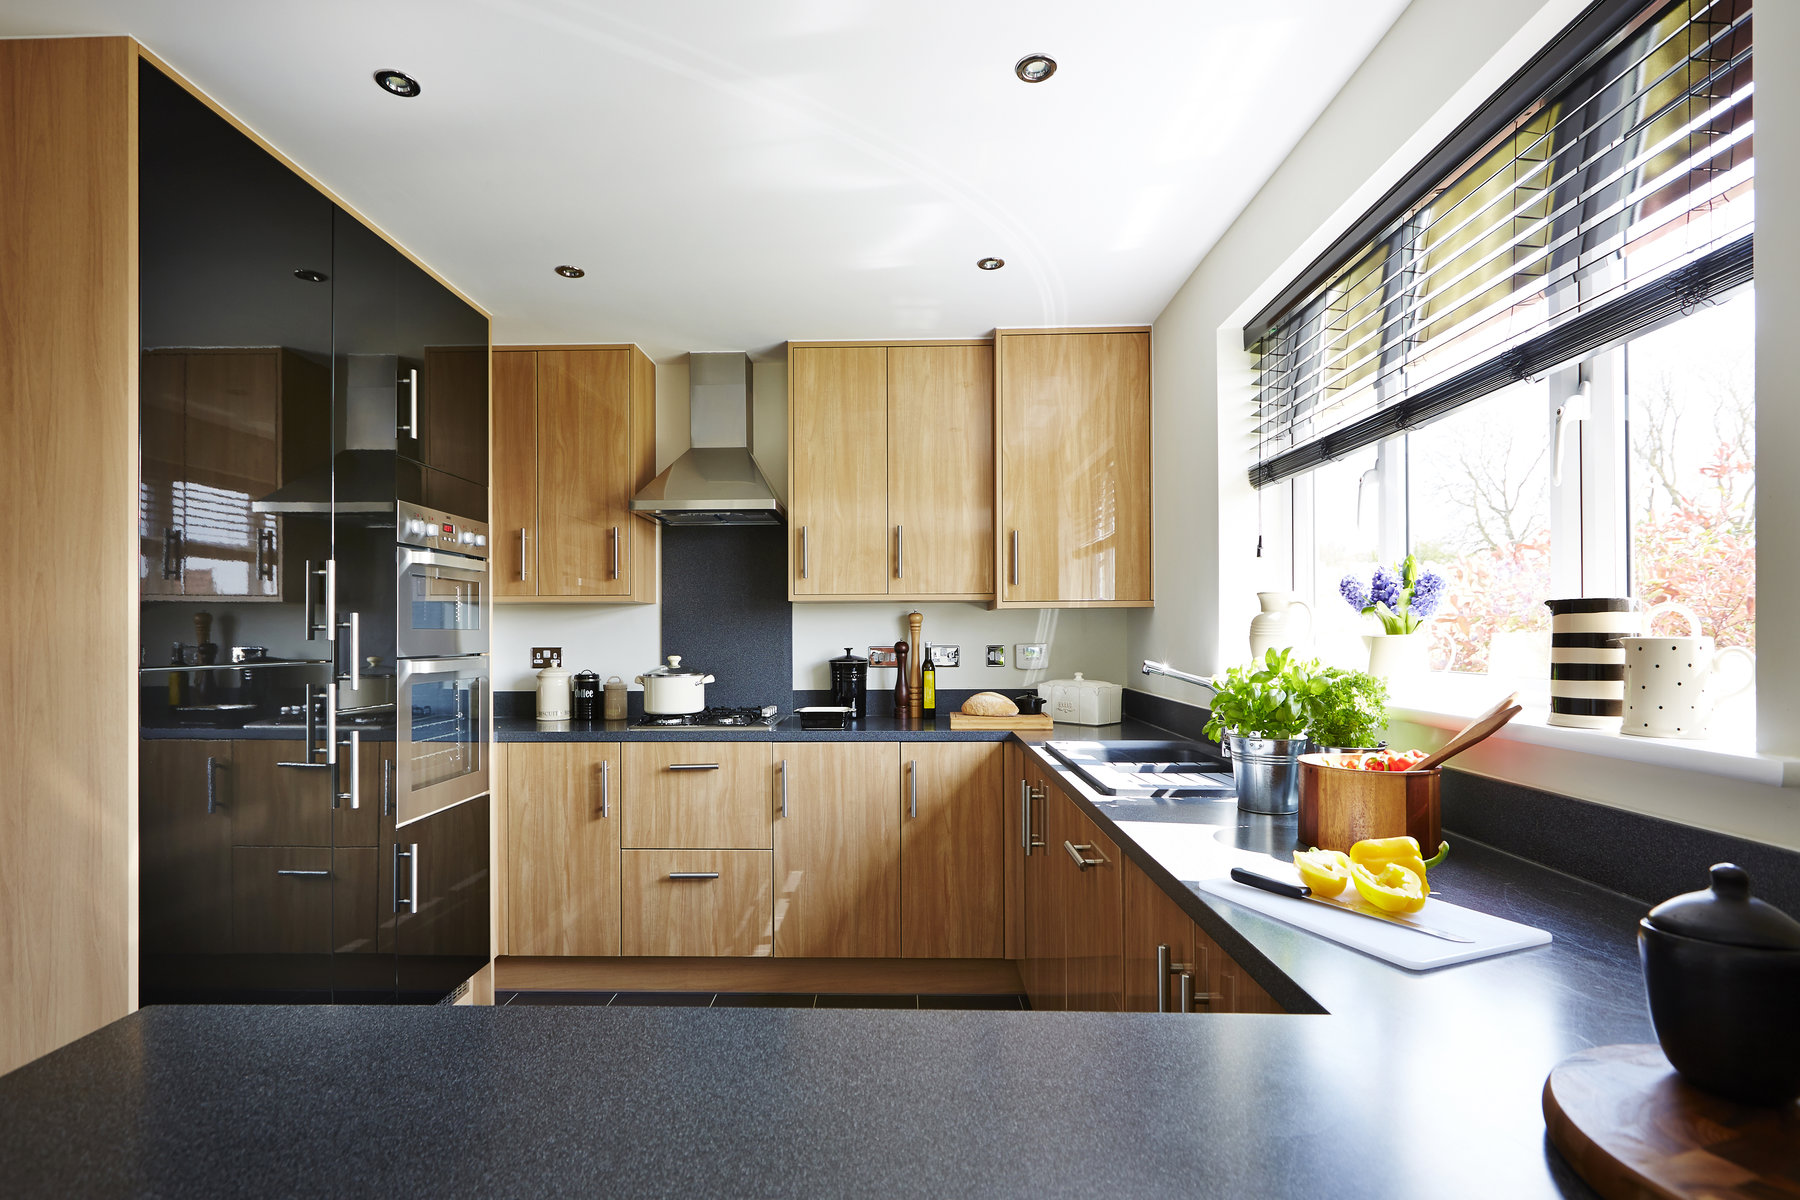 rsz_tw_east_mids_the_wheatfields_pb52__wilton_kitchen_1